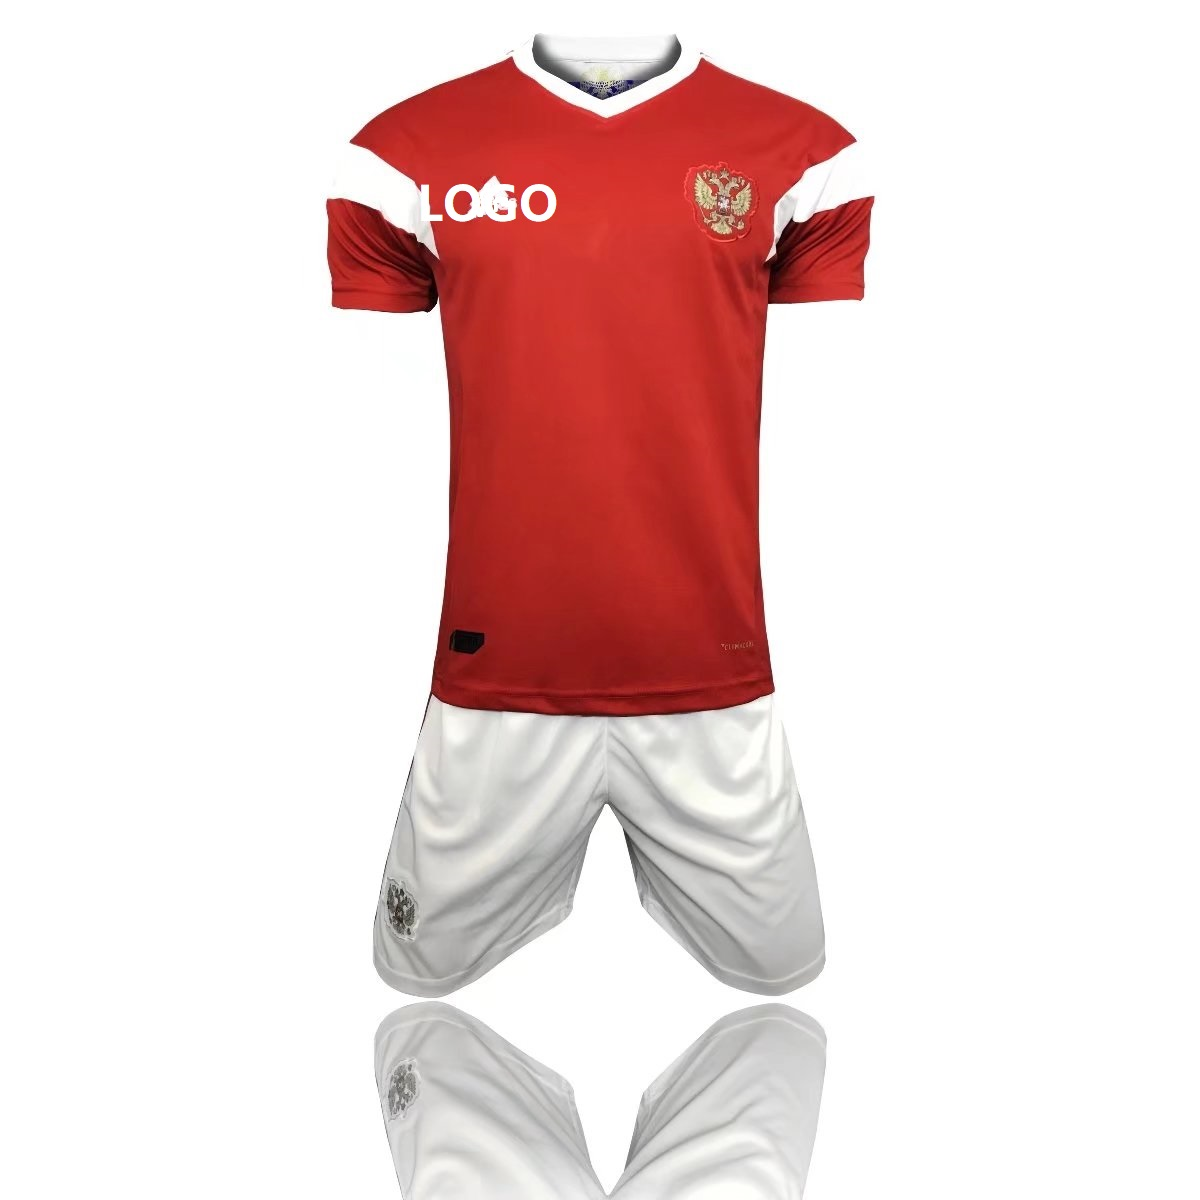 2018 Russia World Cup Russia Home Red white Adult men Soccer Uniform Men  cheap Football Kits Custom Name Number e4d85cbba